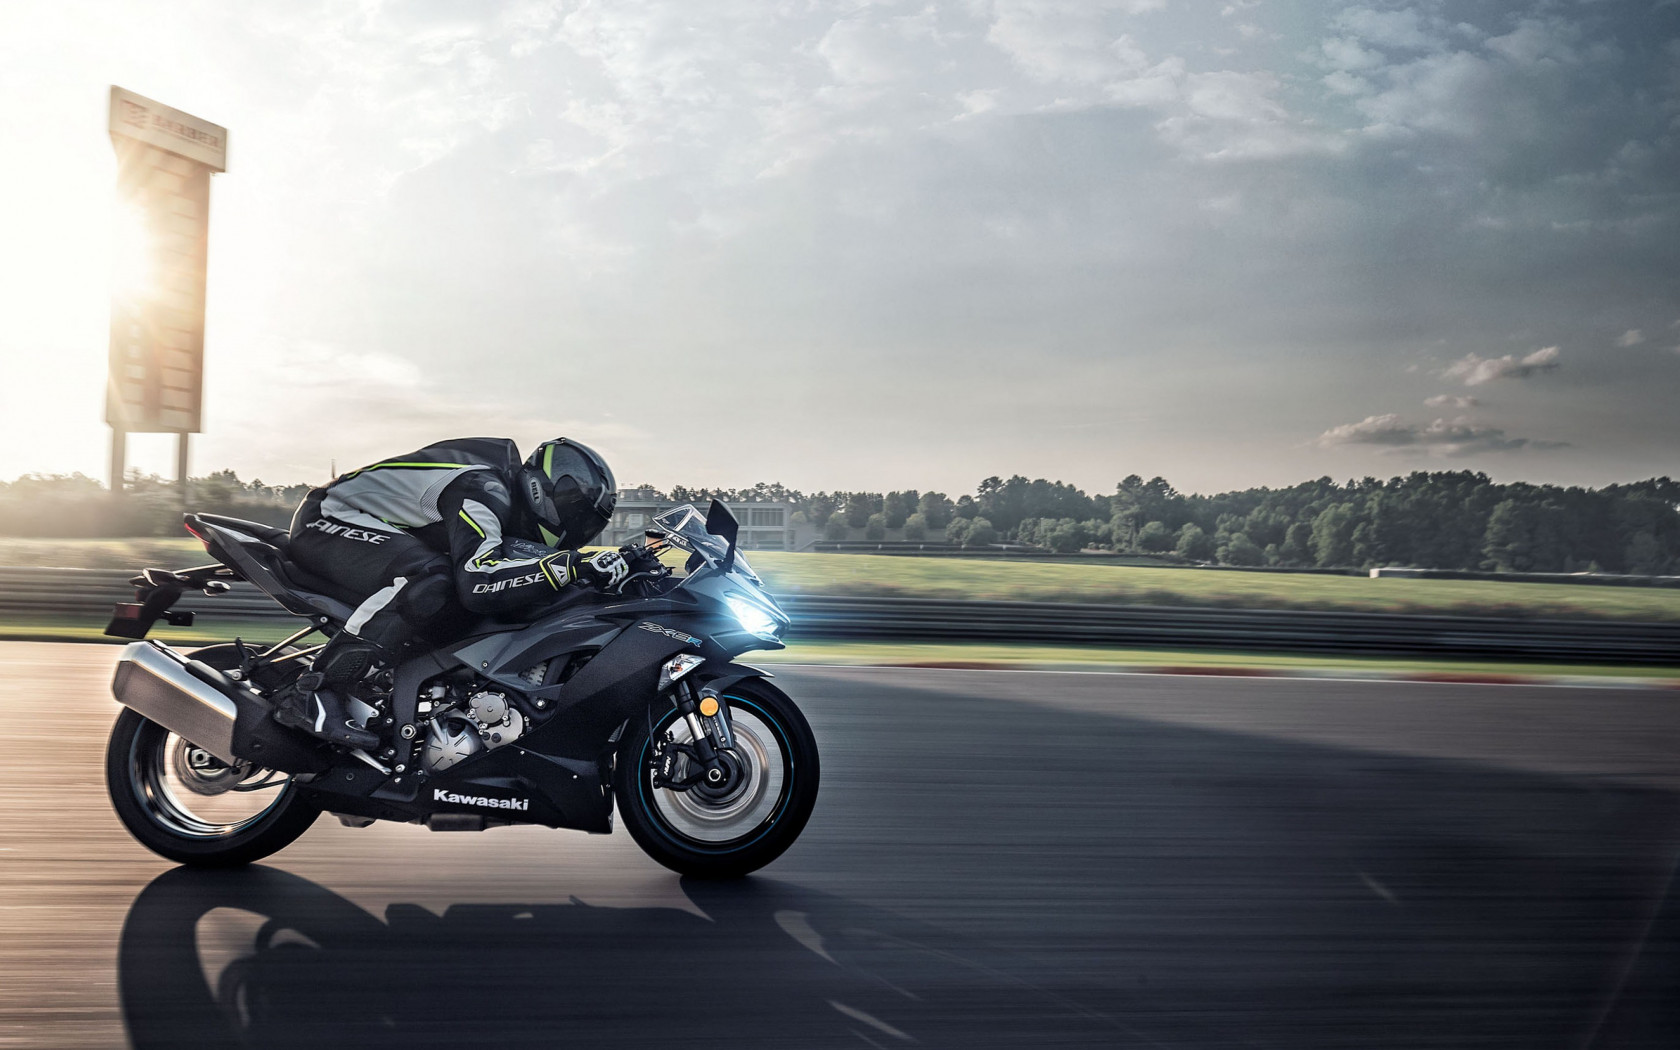 Kawasaki Ninja ZX 6R in motion wallpaper 1680x1050